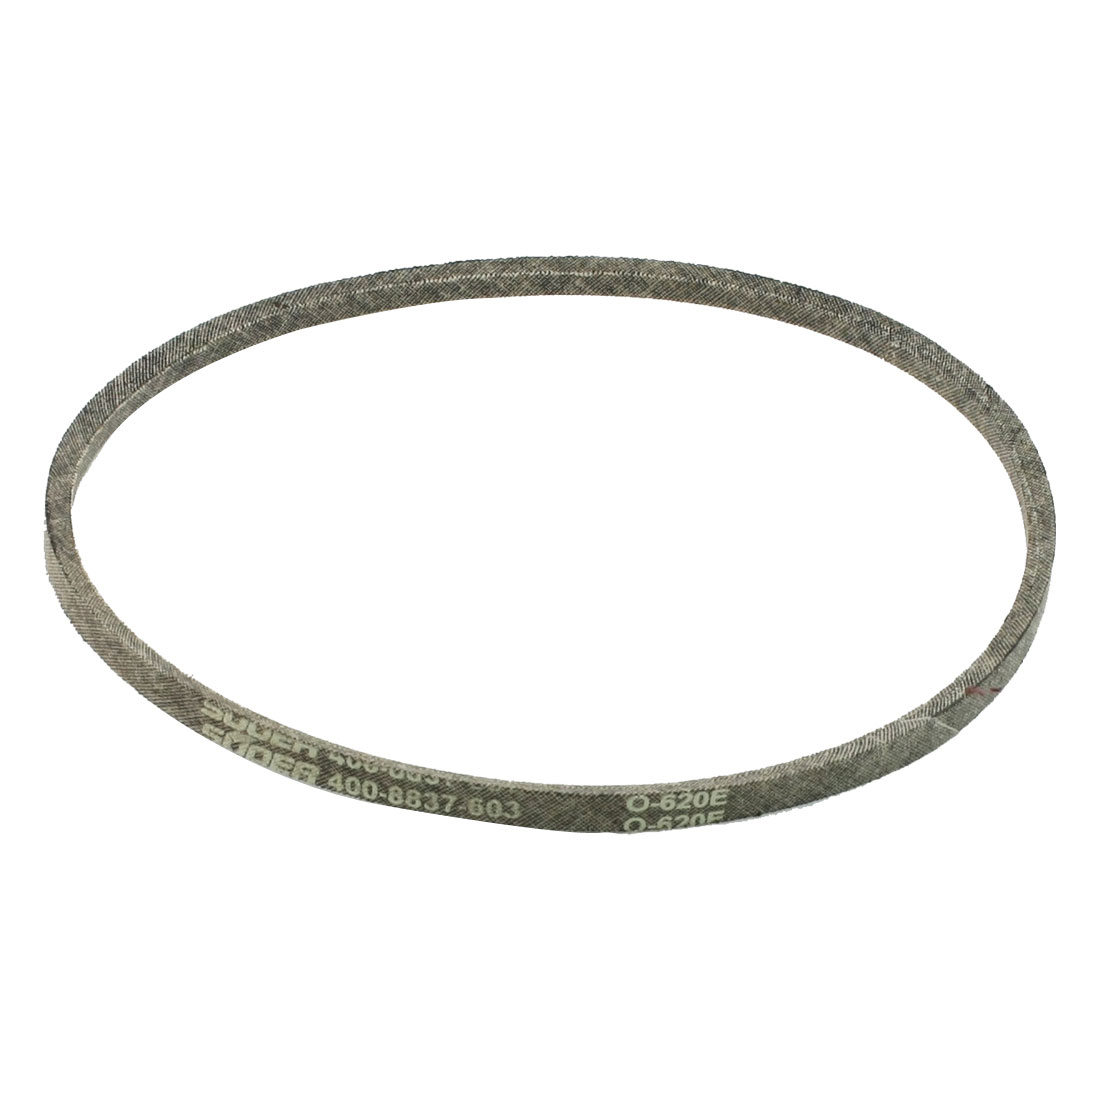 Replacement Washing Machine Parts 24 13/32 Inches Inner Girth O Type Belt